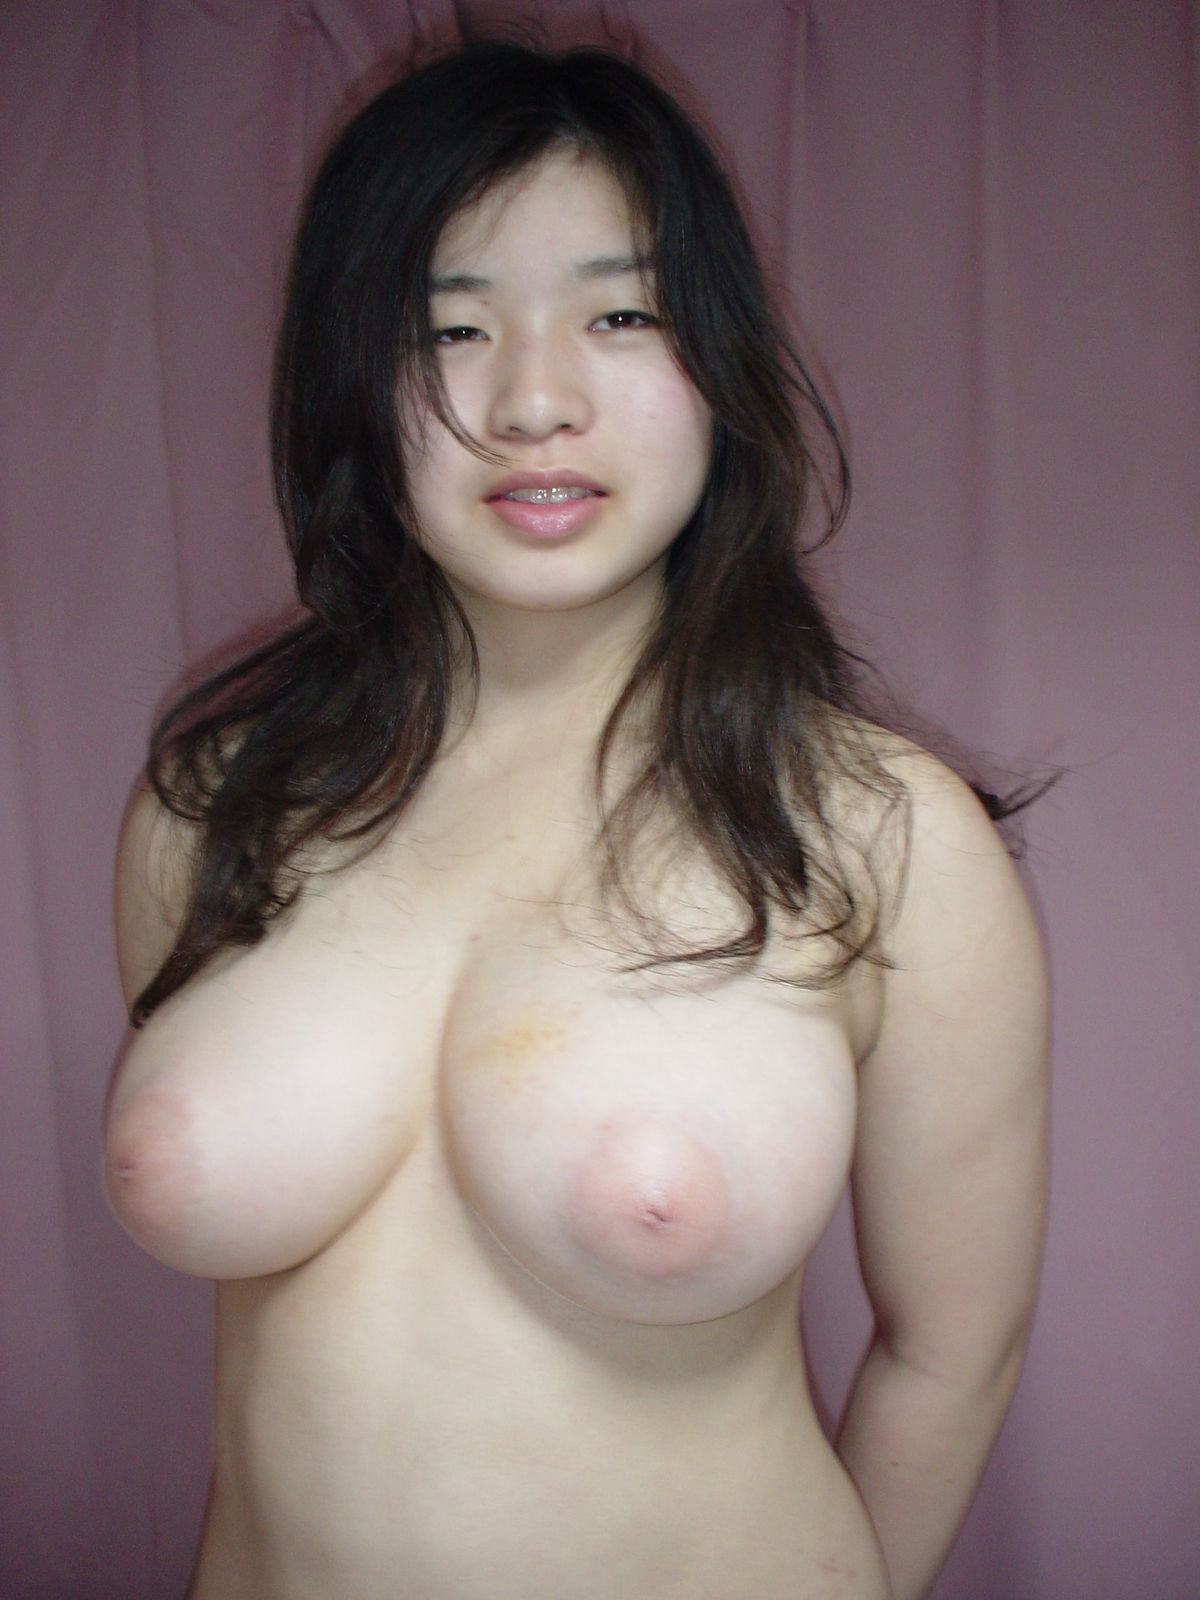 Beautiful porn chubby girl pic comedy LOL!! love